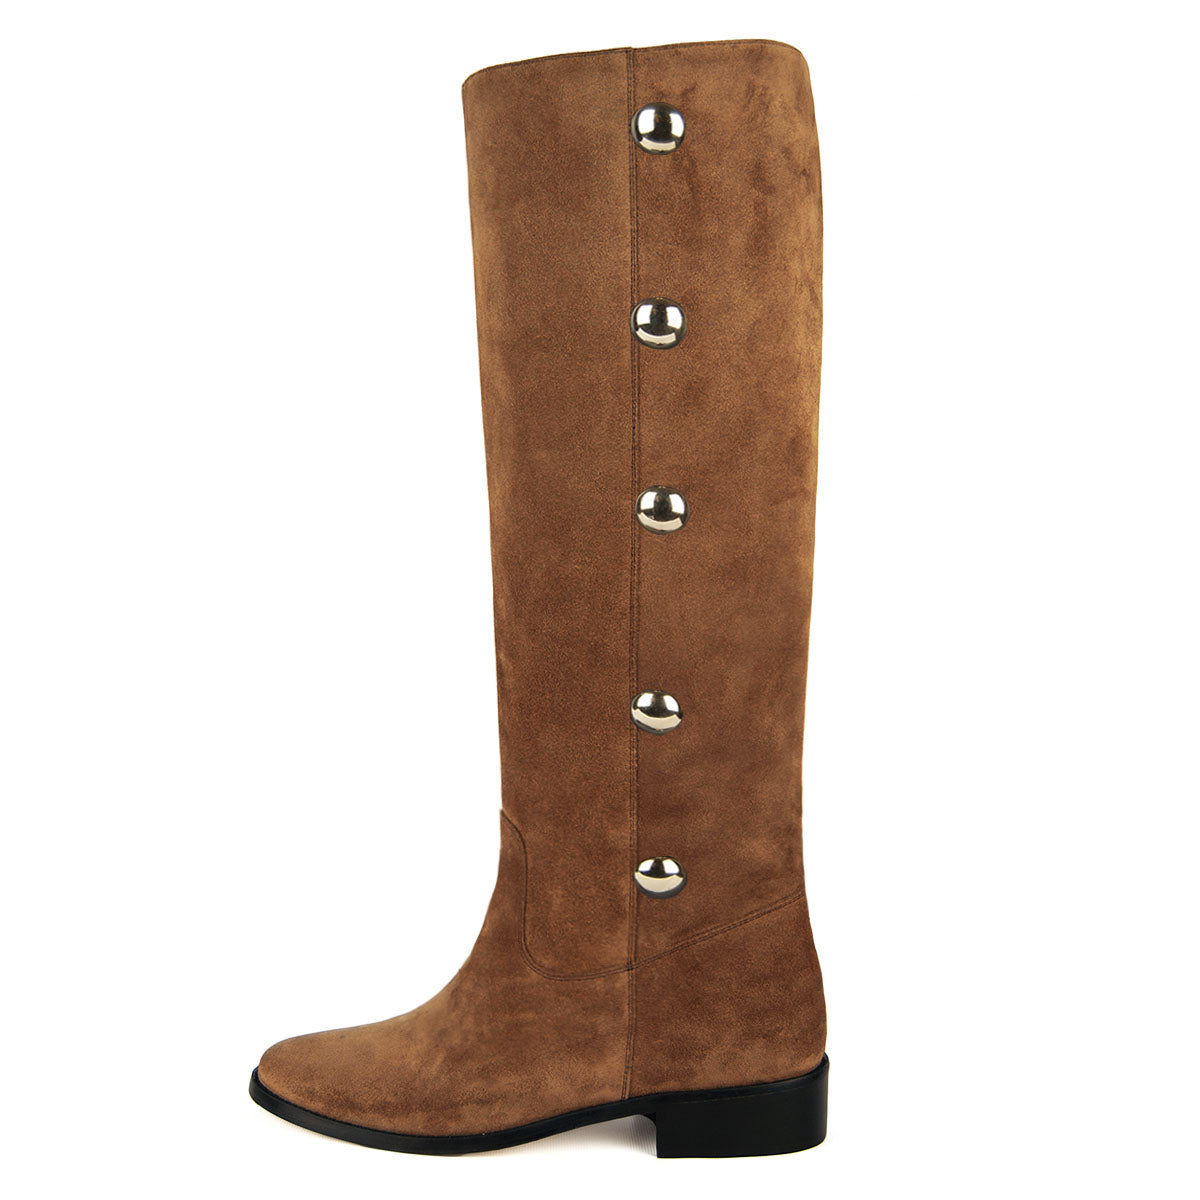 Amarillide suede, cognac - wide calf boots, large fit boots, calf fitting boots, narrow calf boots